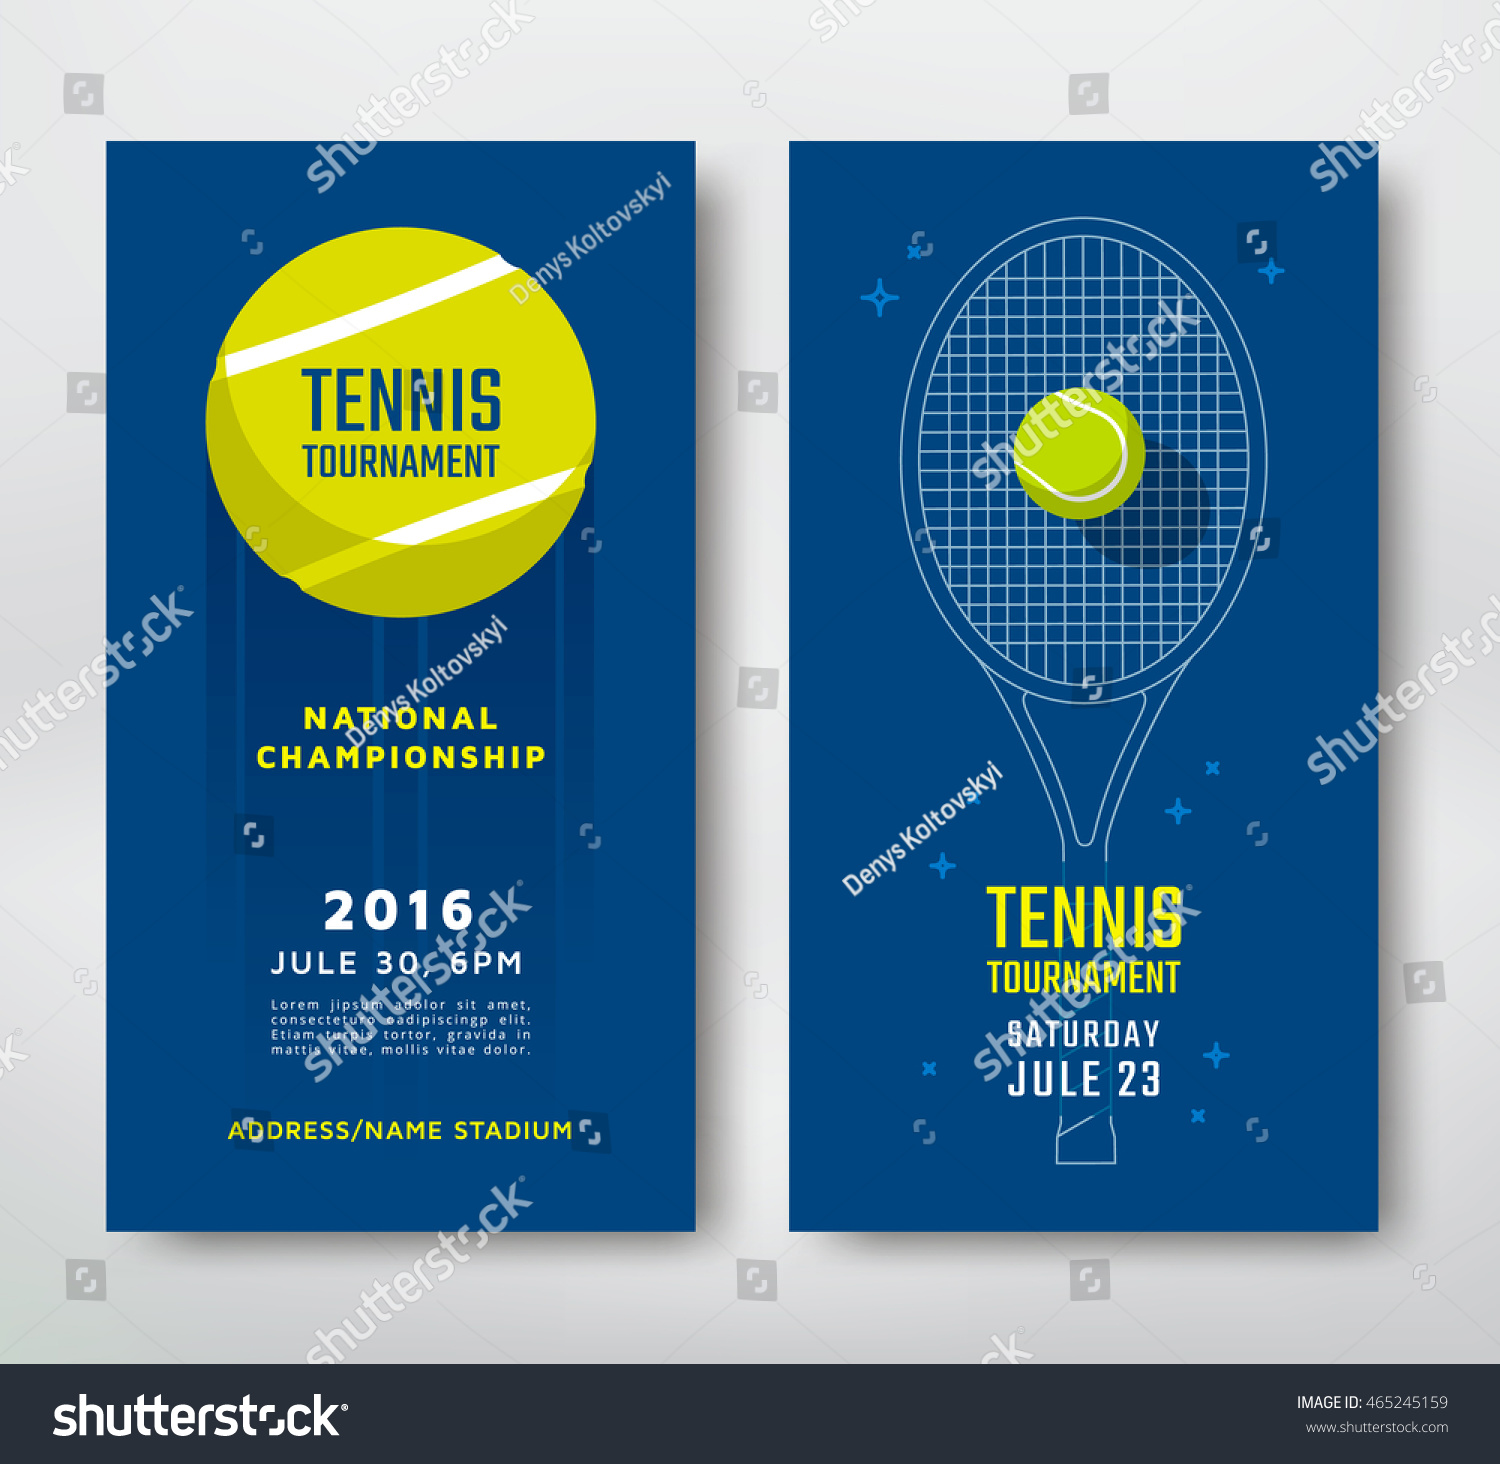 Poster design vector - Tennis Championship Or Tournament Poster Design Vector Illustration